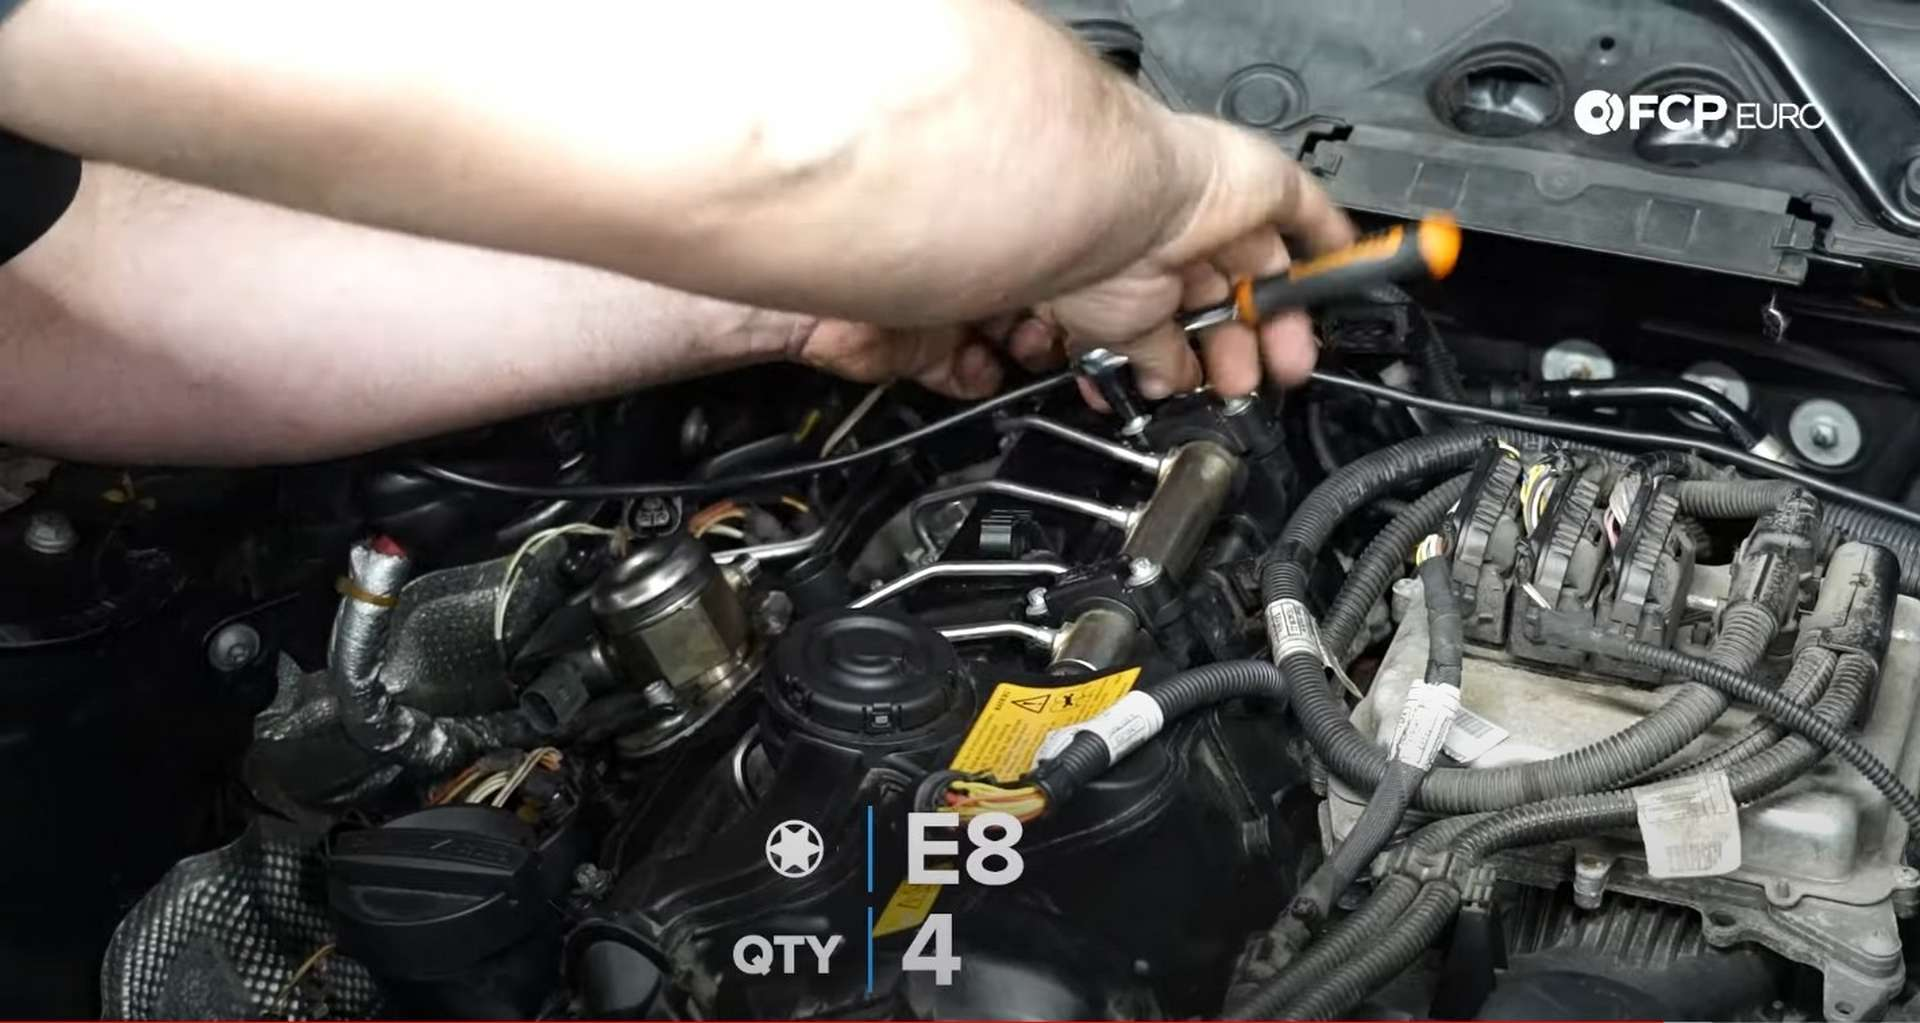 36-DIY-BMW-F30-Valve-Cover-Replacement_Refitting-Fuel-System